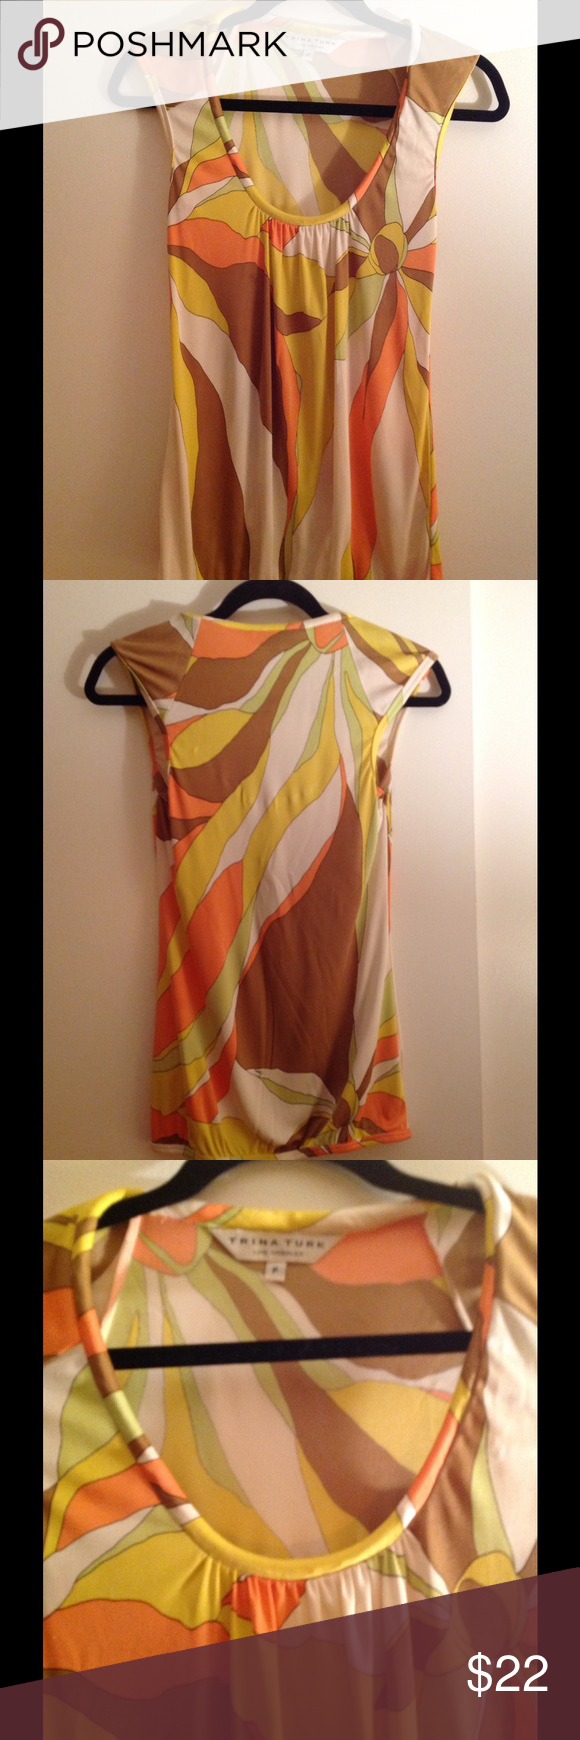 Trina Turk sleeveless blouse Gorgeous soft jersey fabric no snags pulls or tears pretty Pucci print trina turk Tops Blouses